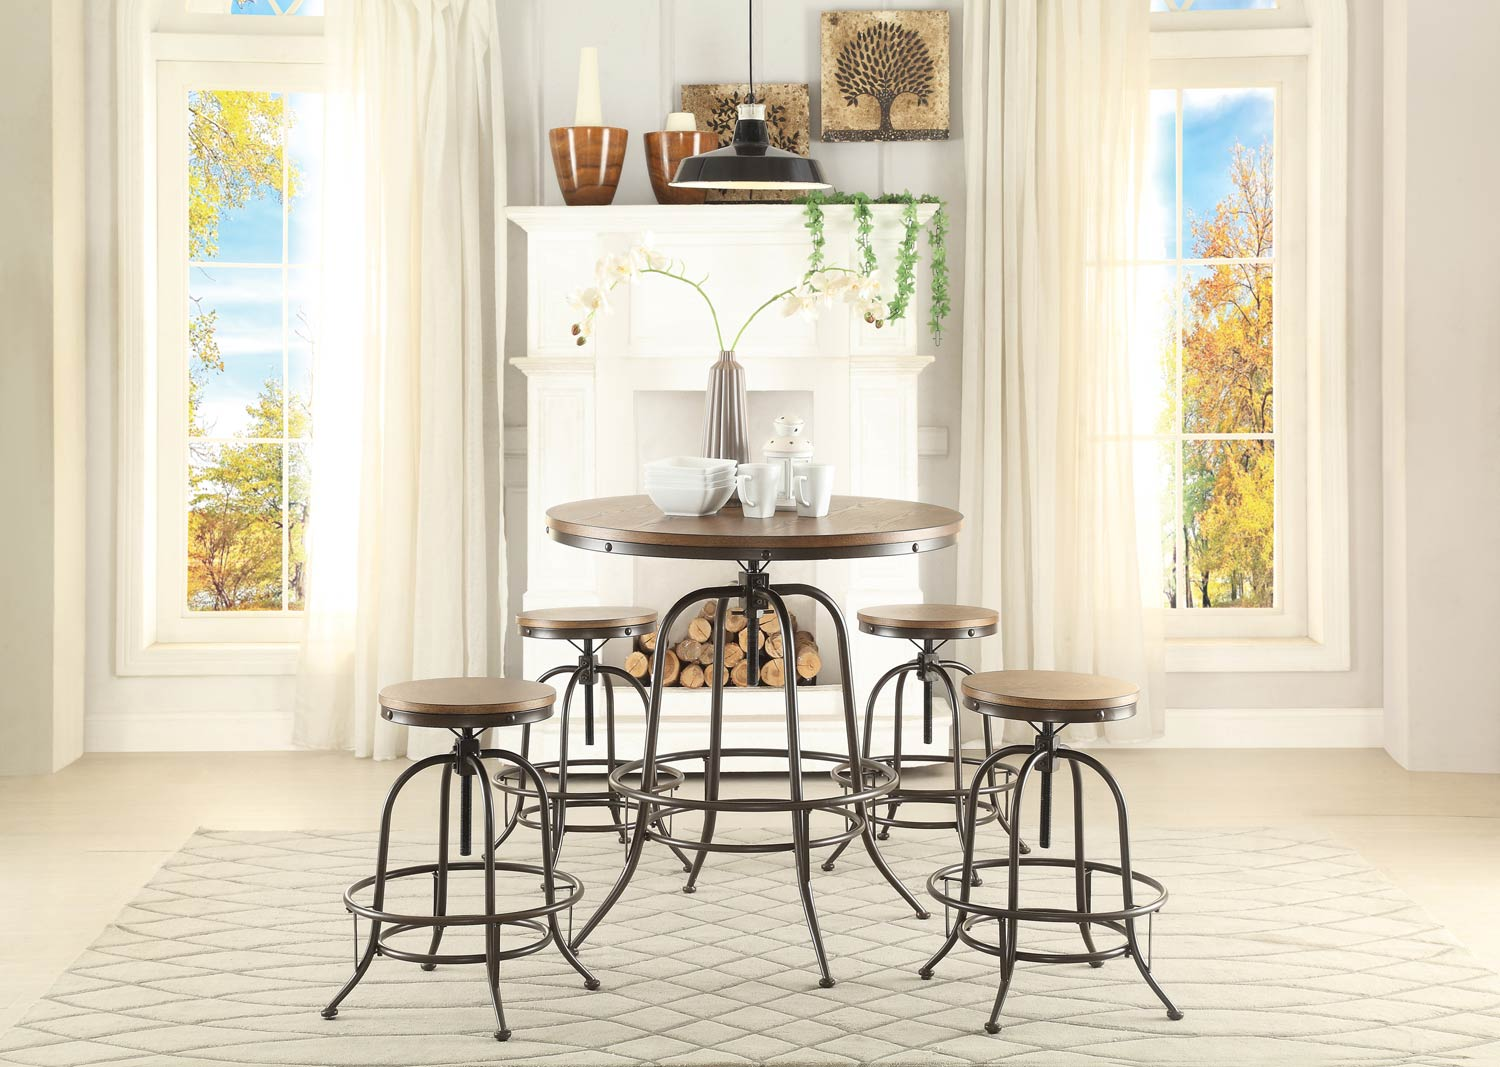 Homelegance Angstrom Round Counter Height Dining Set - Adjustable Height B